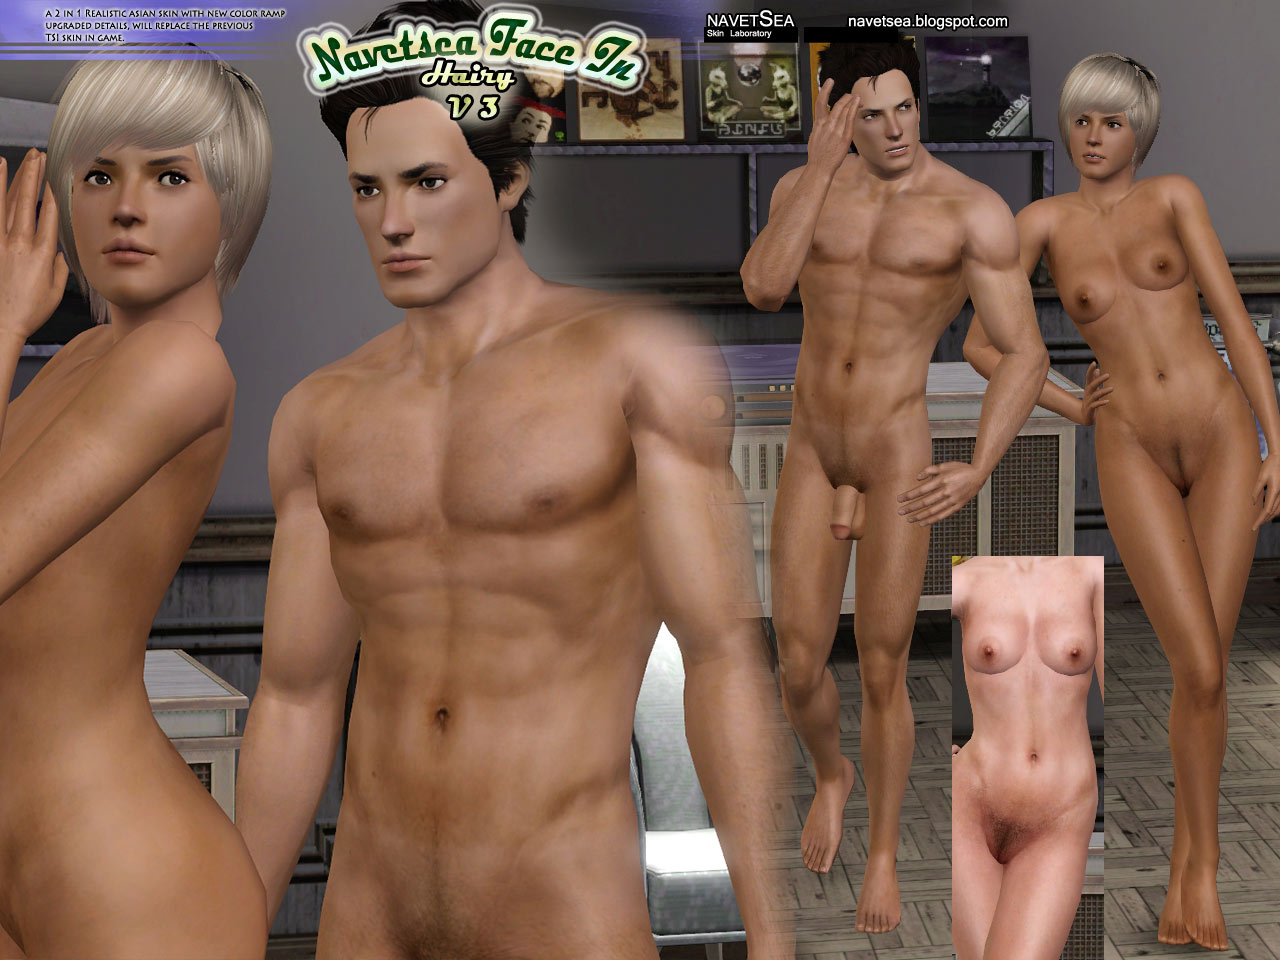 The sims super nude patch sex tube